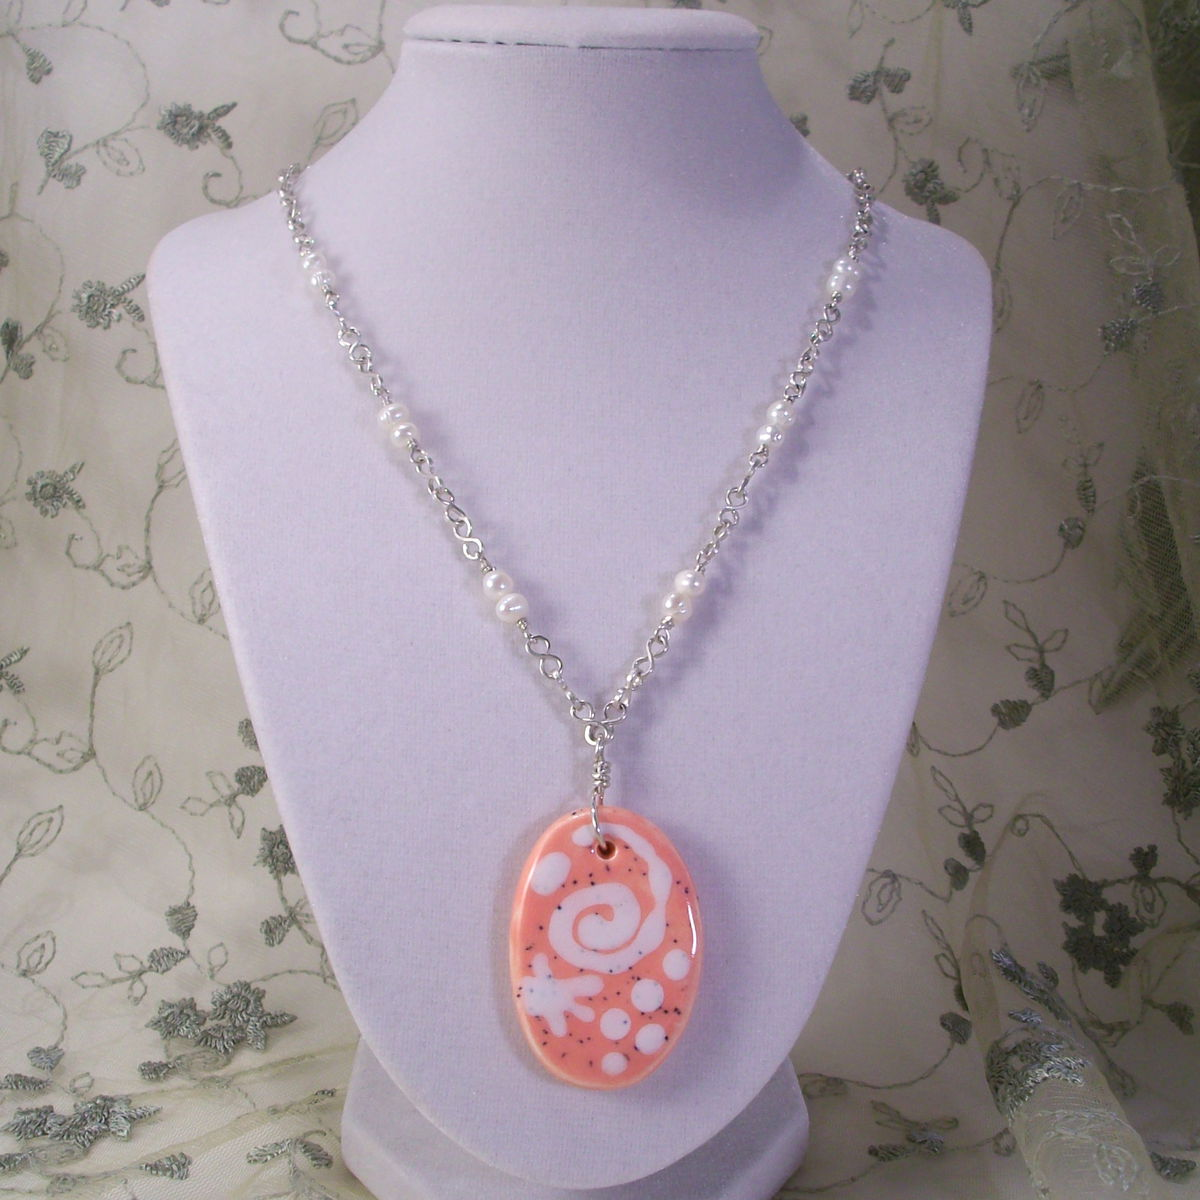 Silver and Pearl Necklace with Large Peach Ceramic Pendant - product image